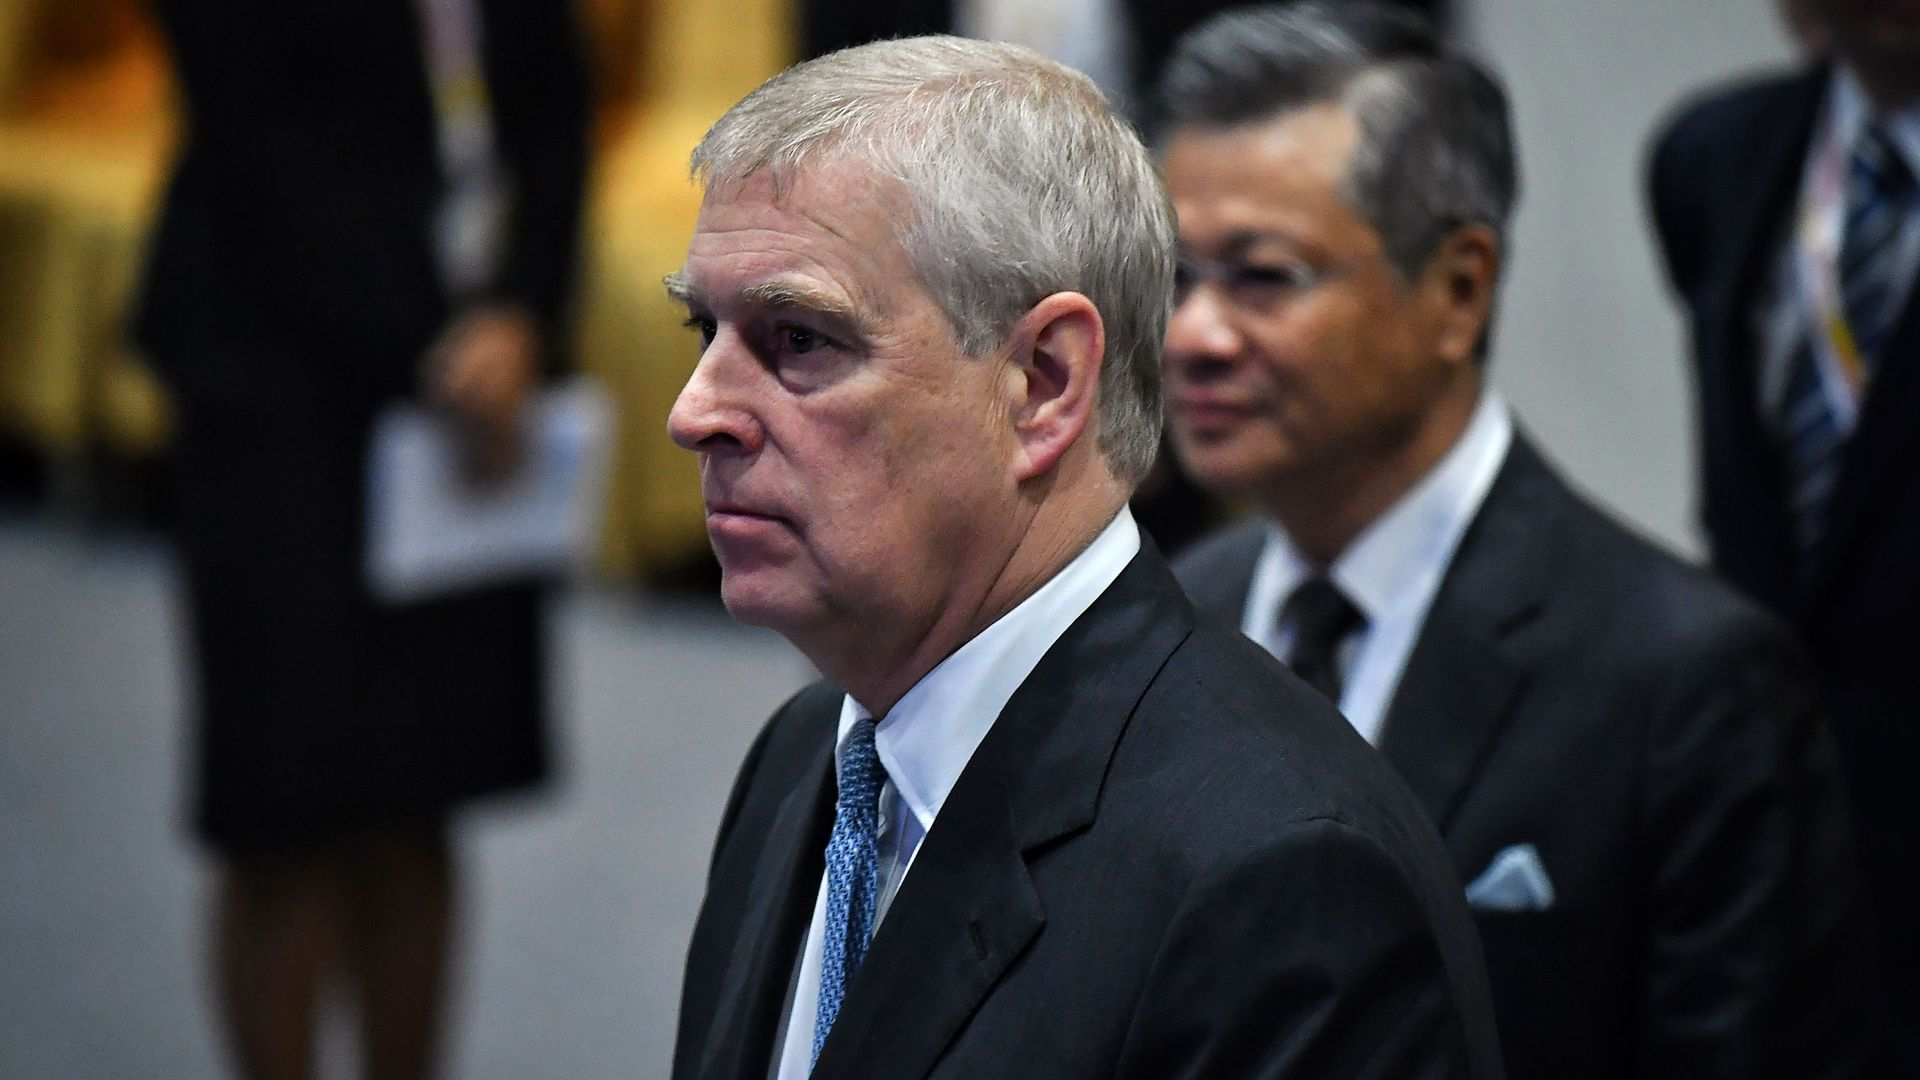 In this image, Prince Andrew stands and walks while wearing a suit.